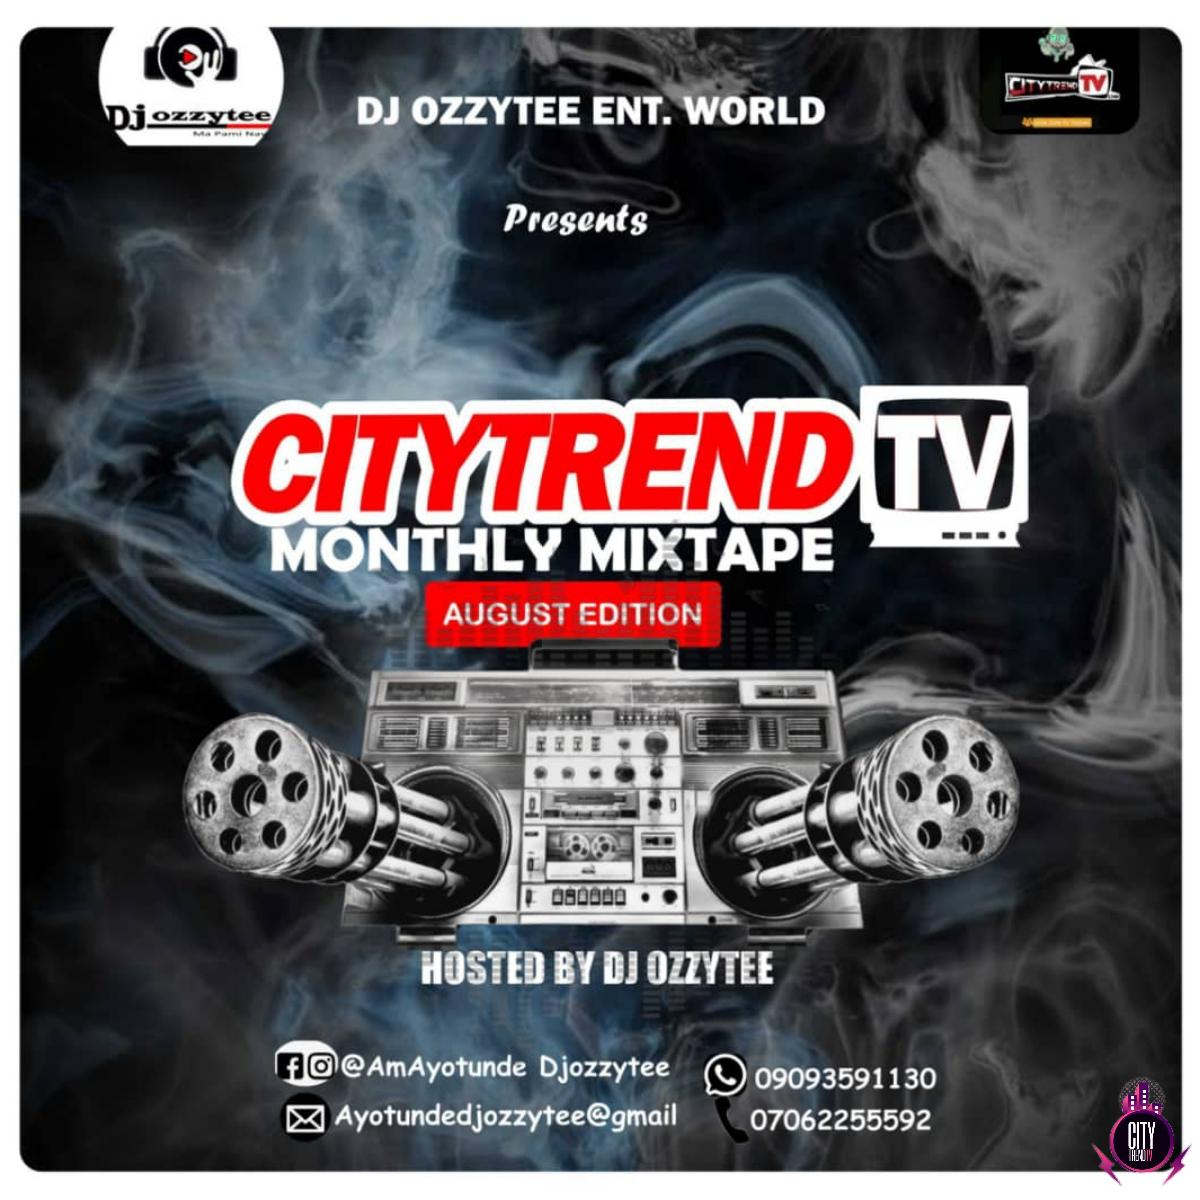 DJ Ozzytee August Edition Monthly Mix mp3 image